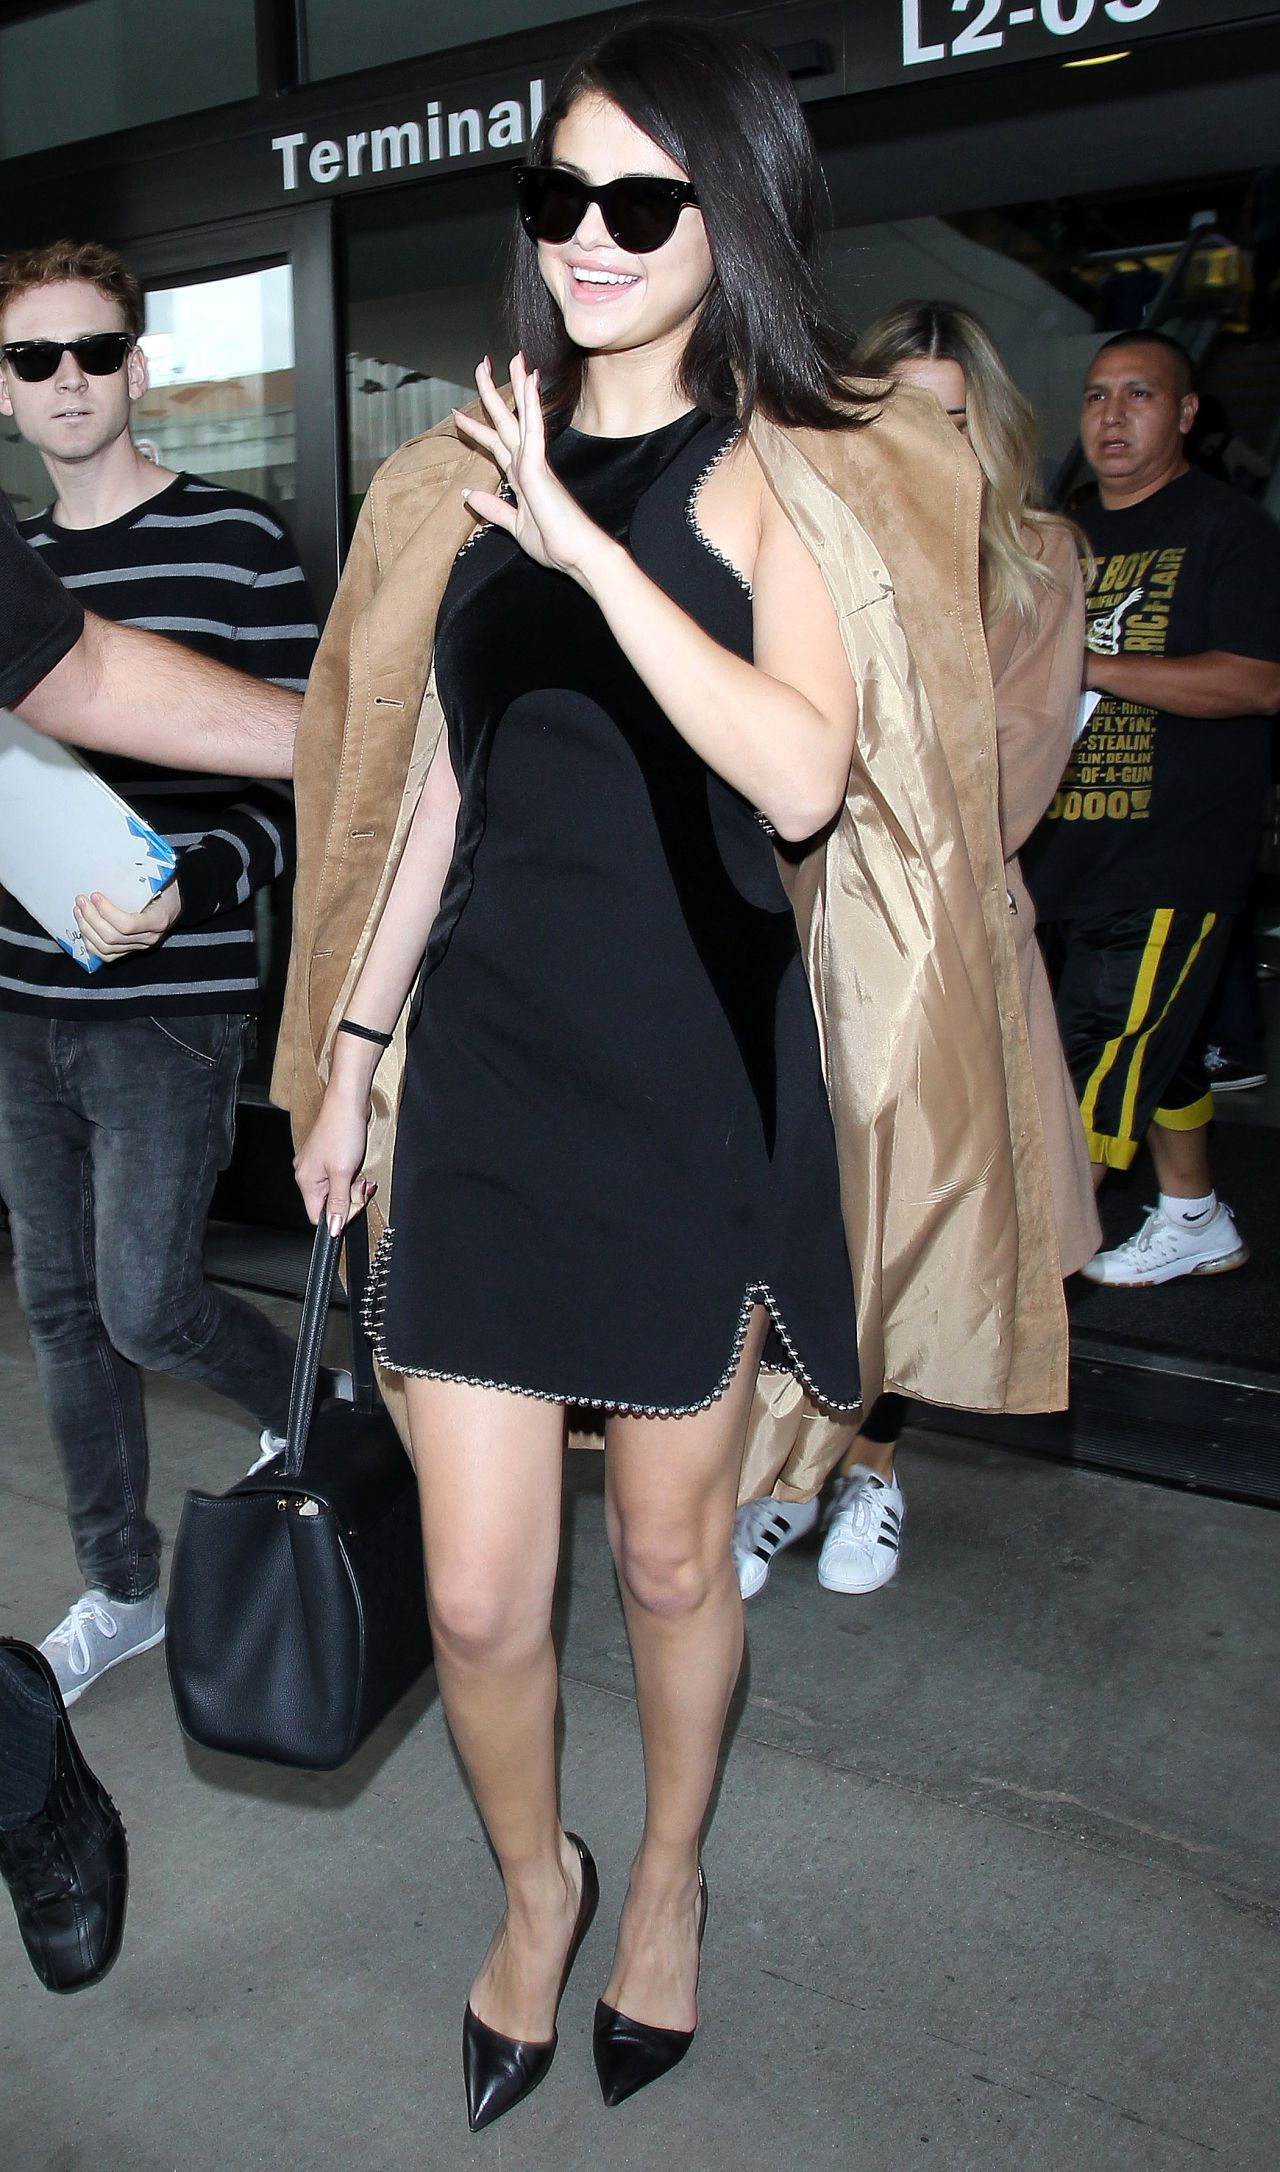 selena-gomez-arriving-at-lax-airport-in-los-angeles-october-2015_15